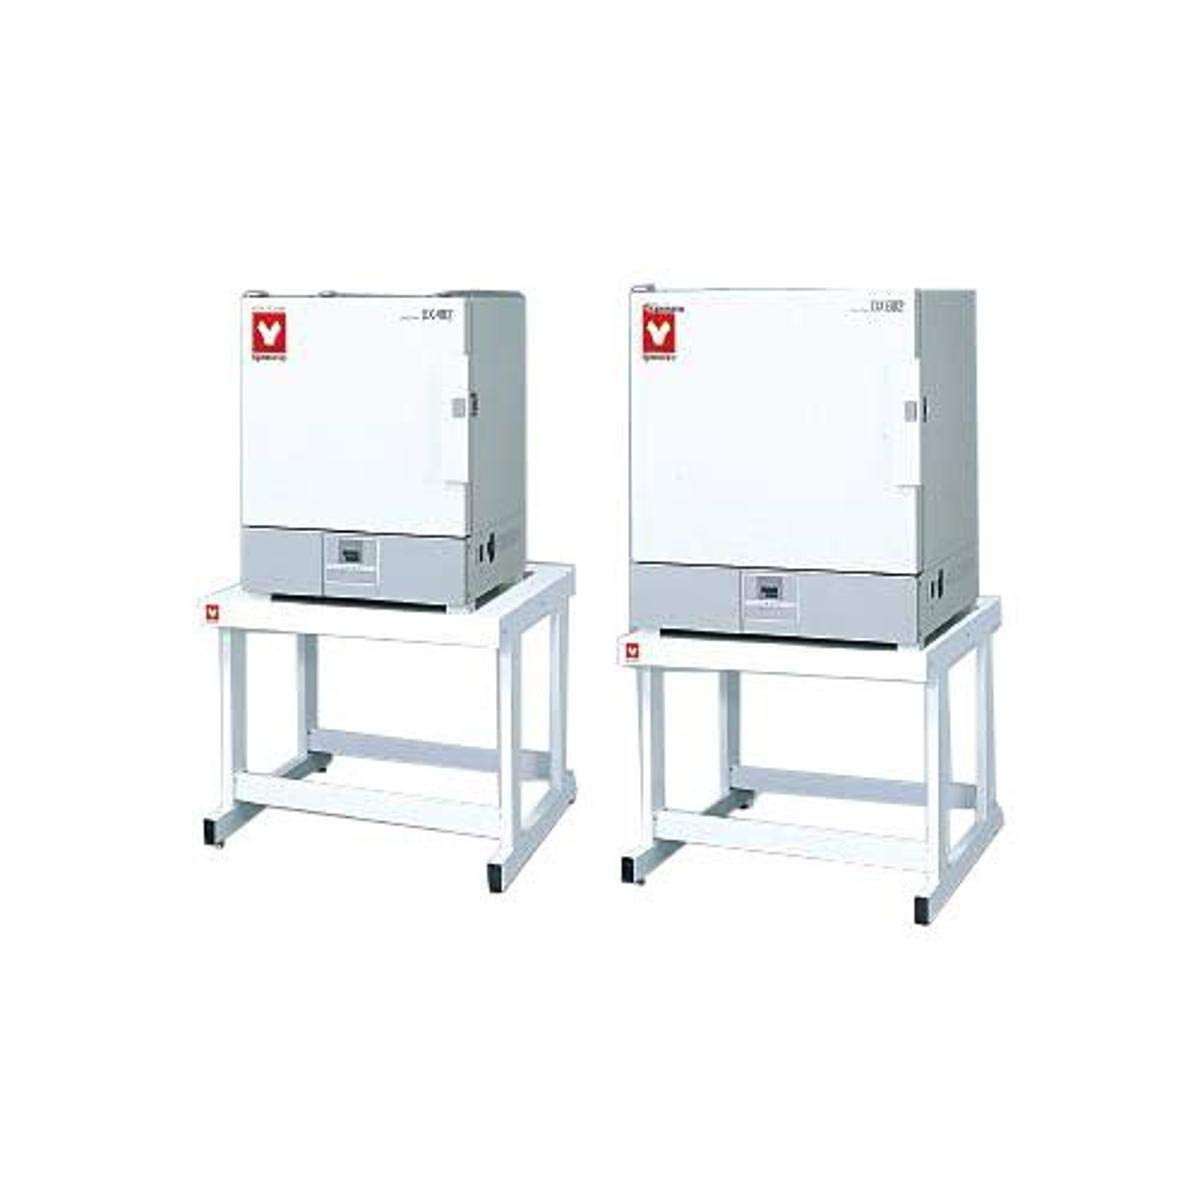 Yamato Seasonal Wrap Introduction DX-302C DX Series High Temperature Gravity Ove Convection Max 77% OFF